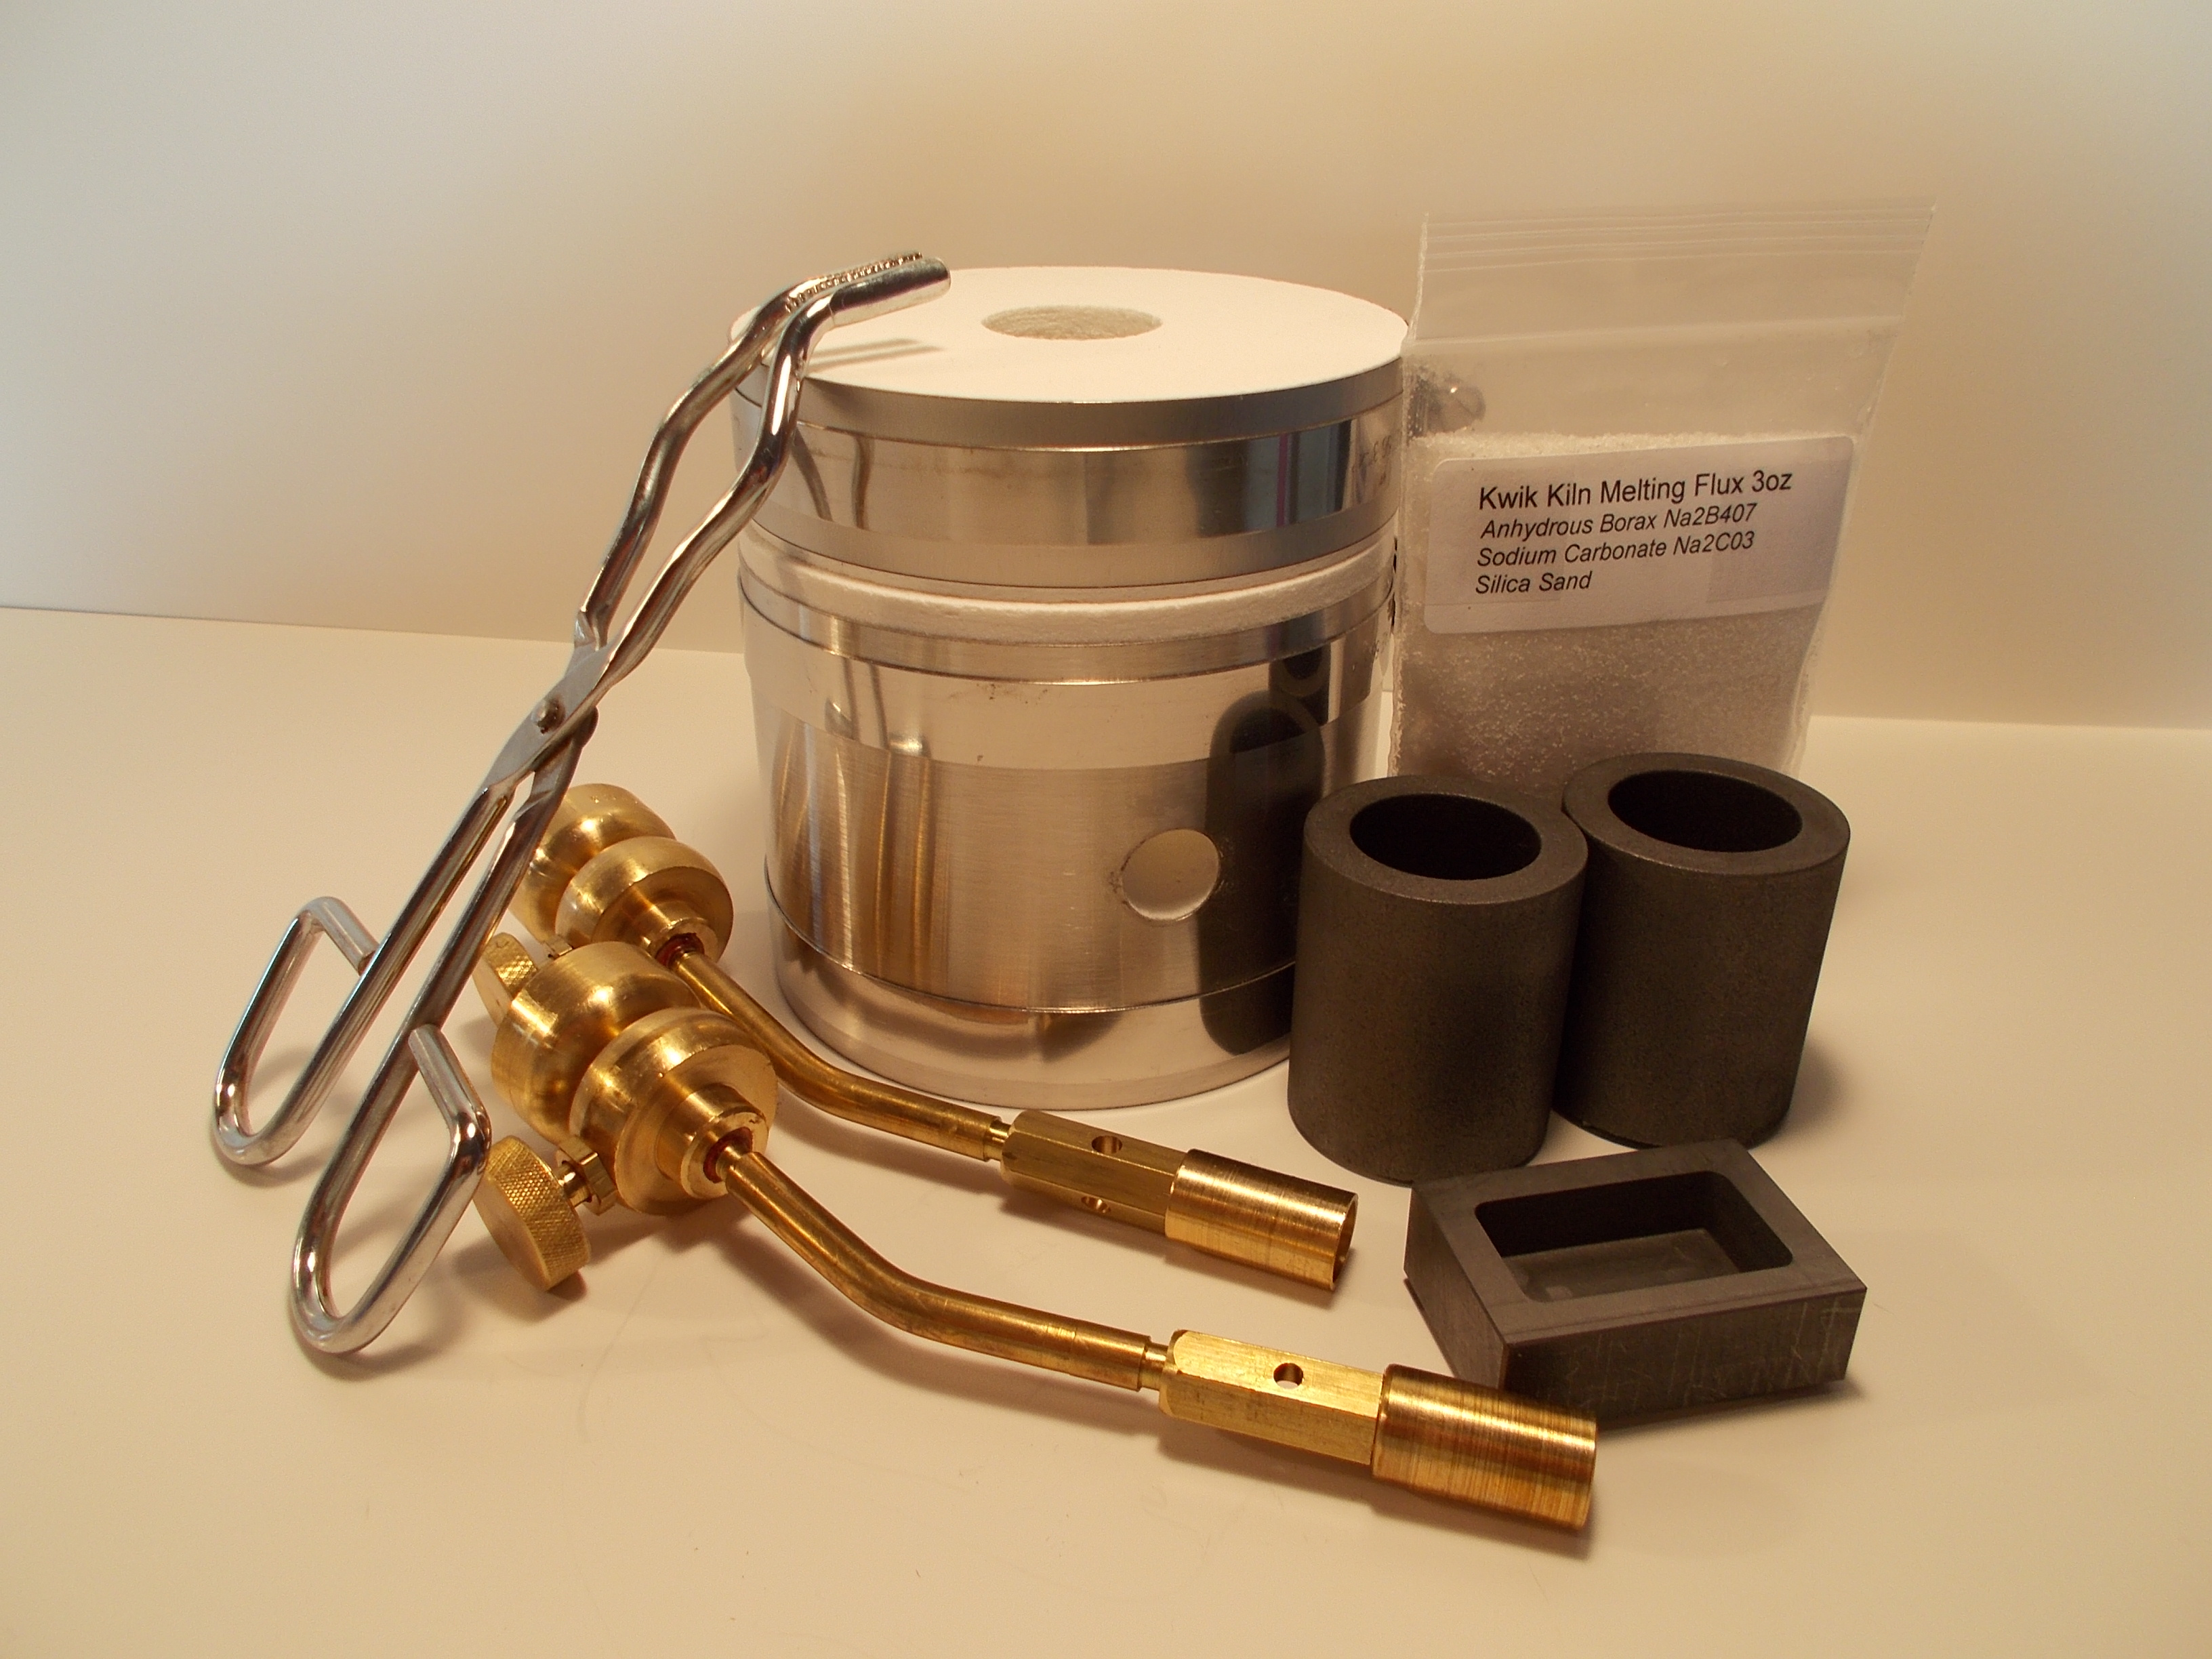 Deluxe Kwik Kiln Melting Kit ( with Torches)